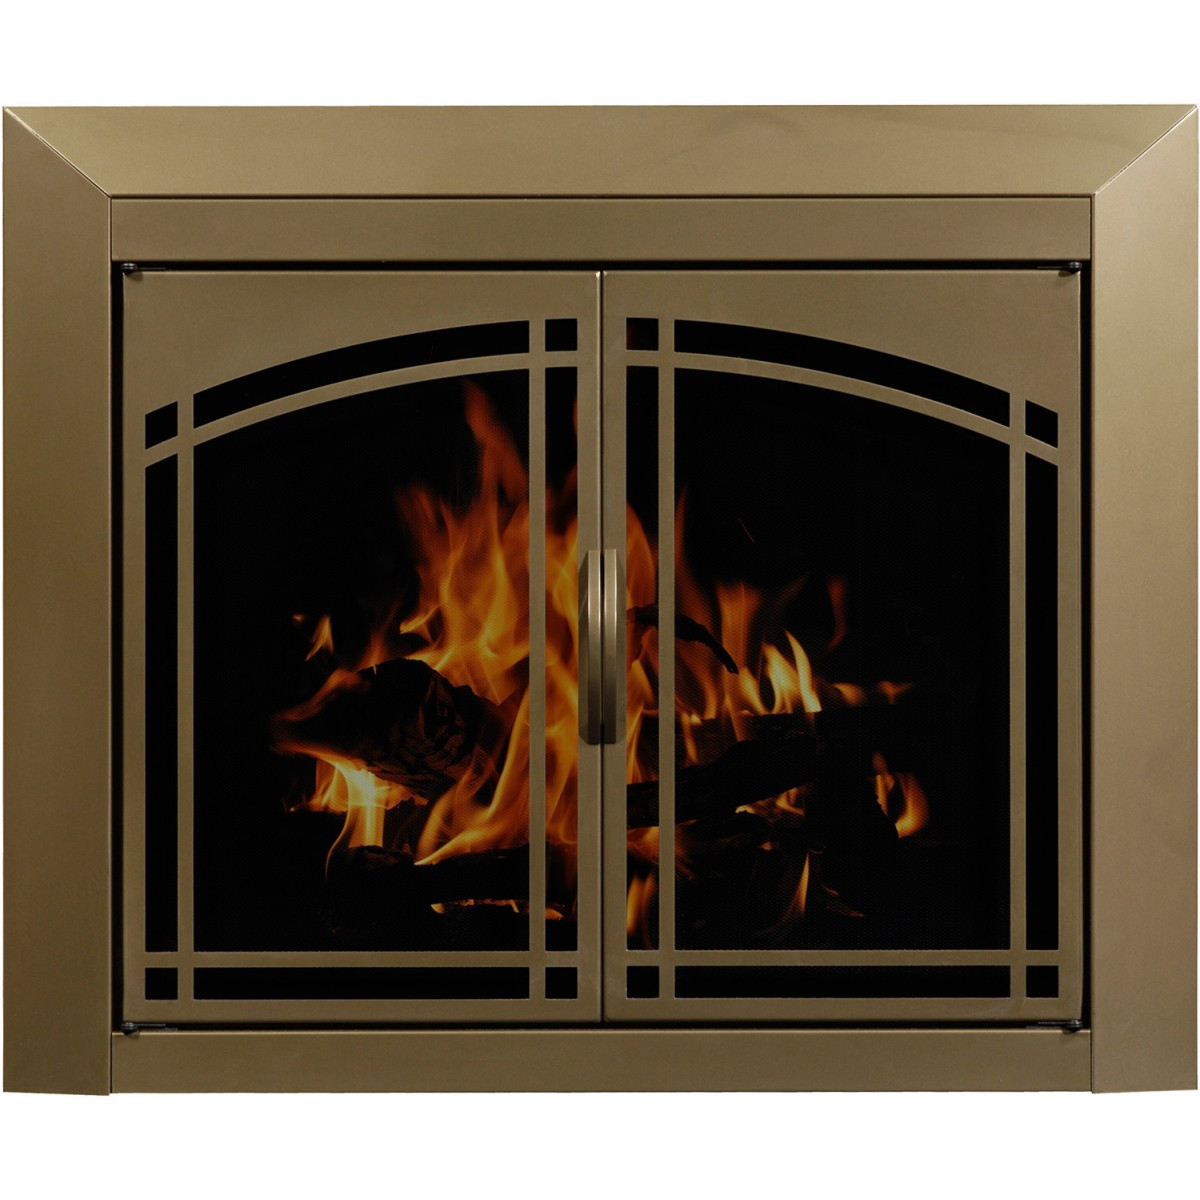 Best ideas about Glass Doors For Fireplace . Save or Pin Arched Plate Masonry Fireplace Glass Doors Manassa Doors Now.